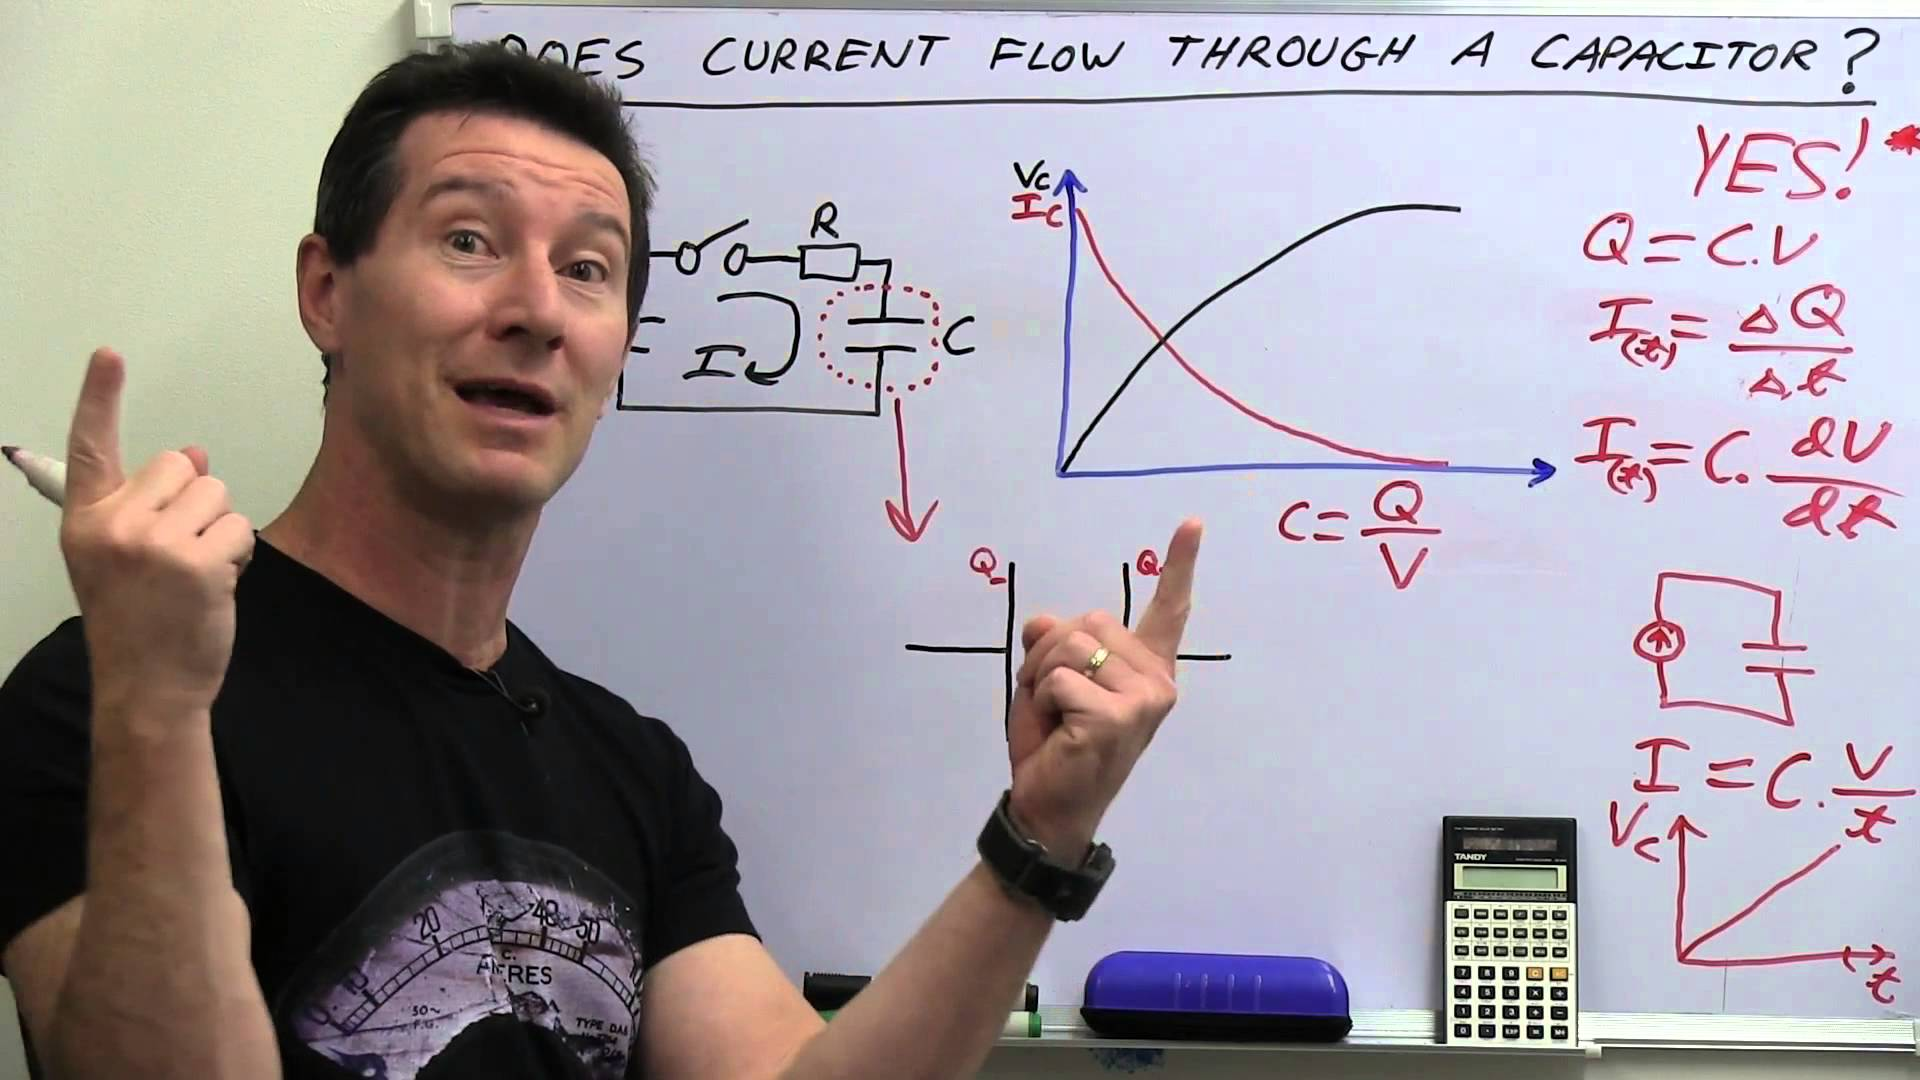 EEVblog #486 – Does Current Flow Through A Capacitor?